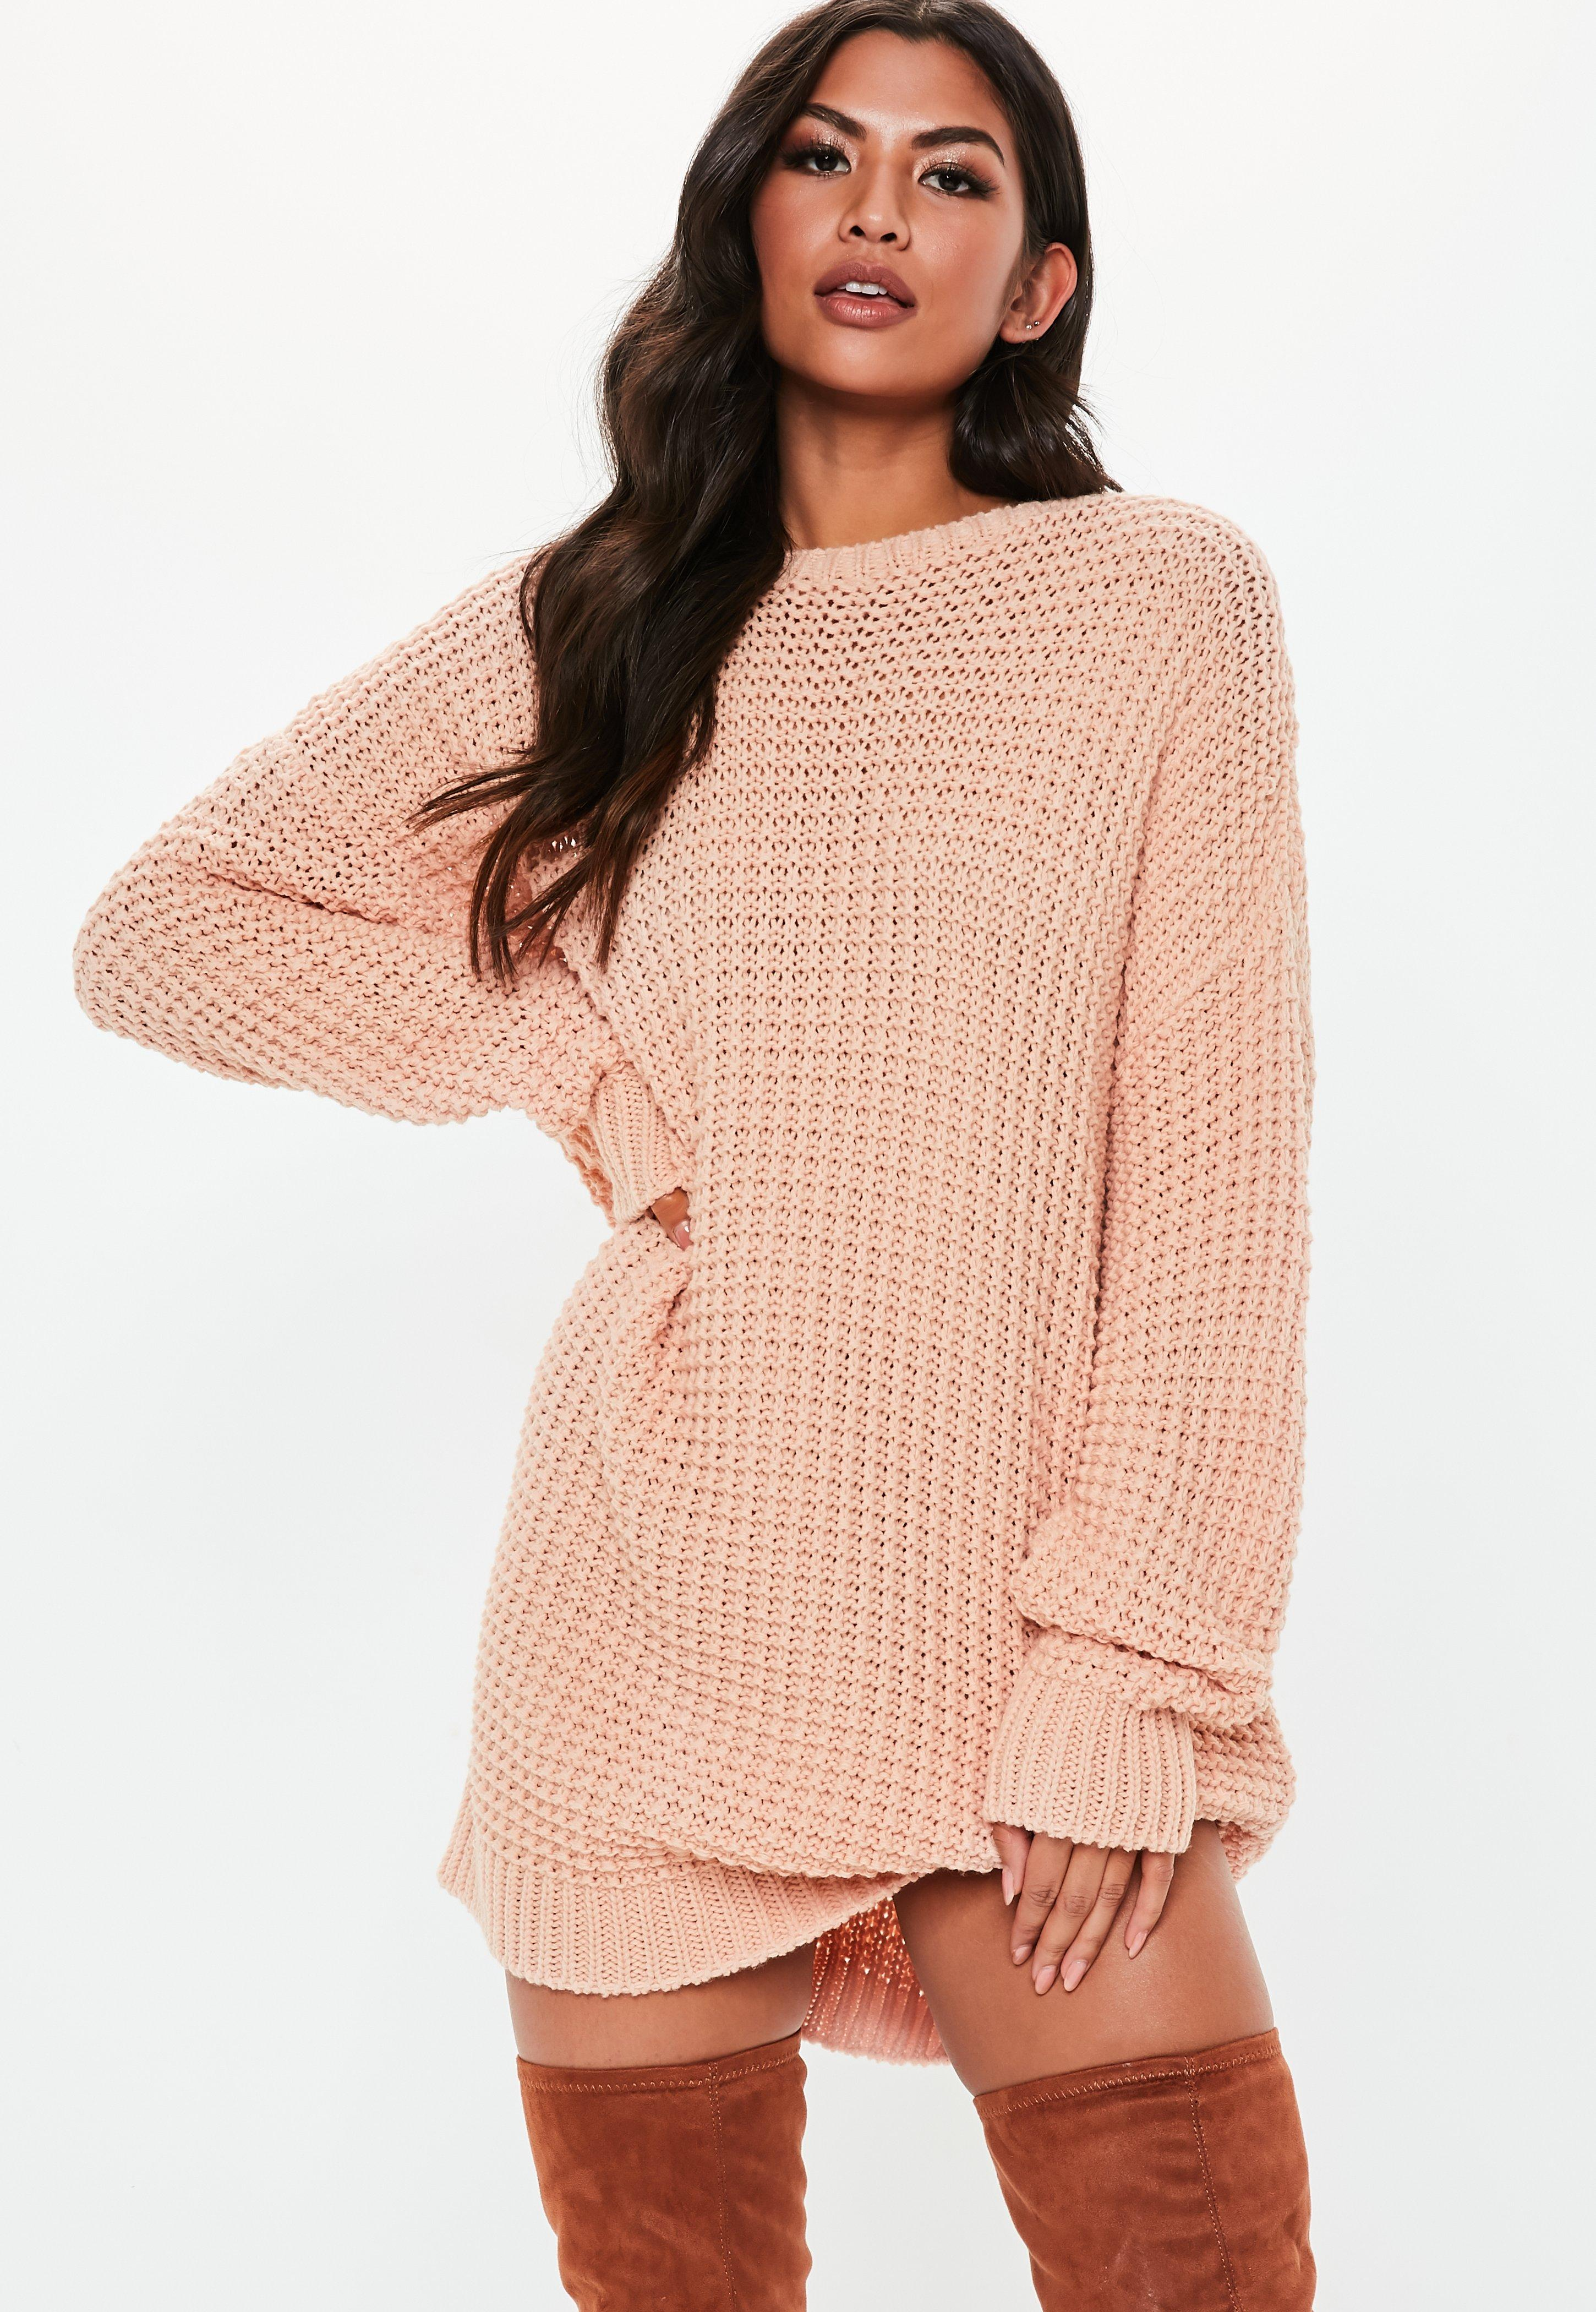 90395f6e26e Sweater Dresses - Oversized Knitted Dresses